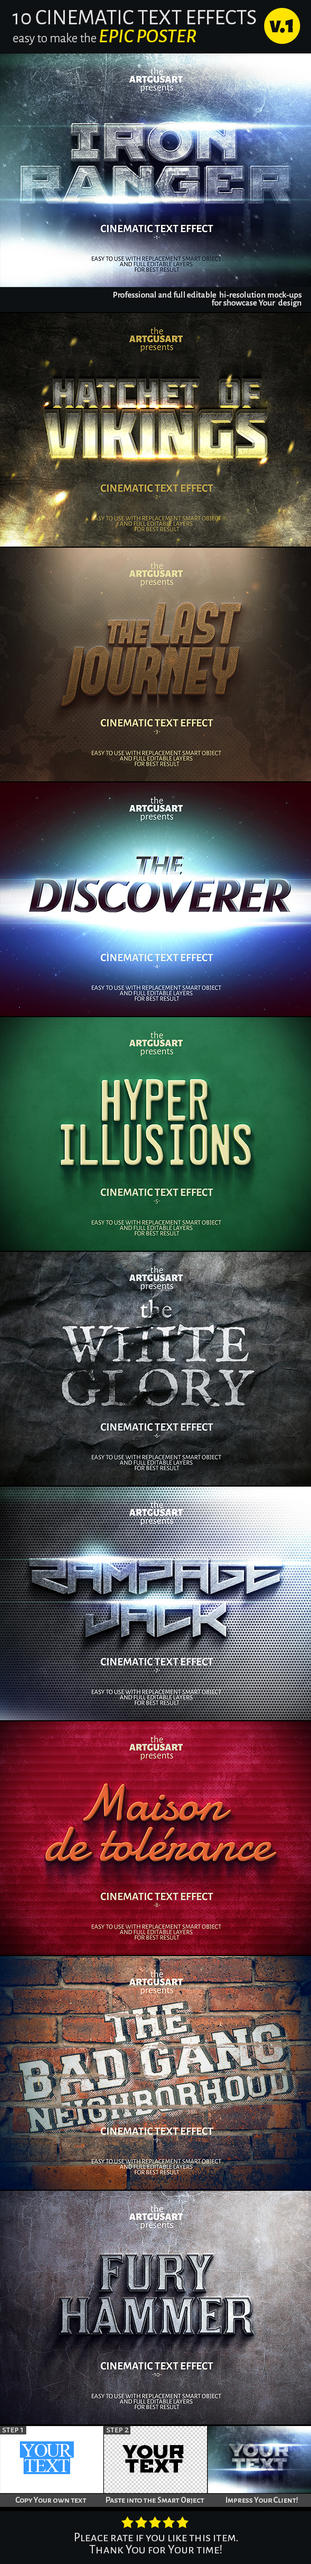 Cinematic Text Effect V 1 Main by artgusart